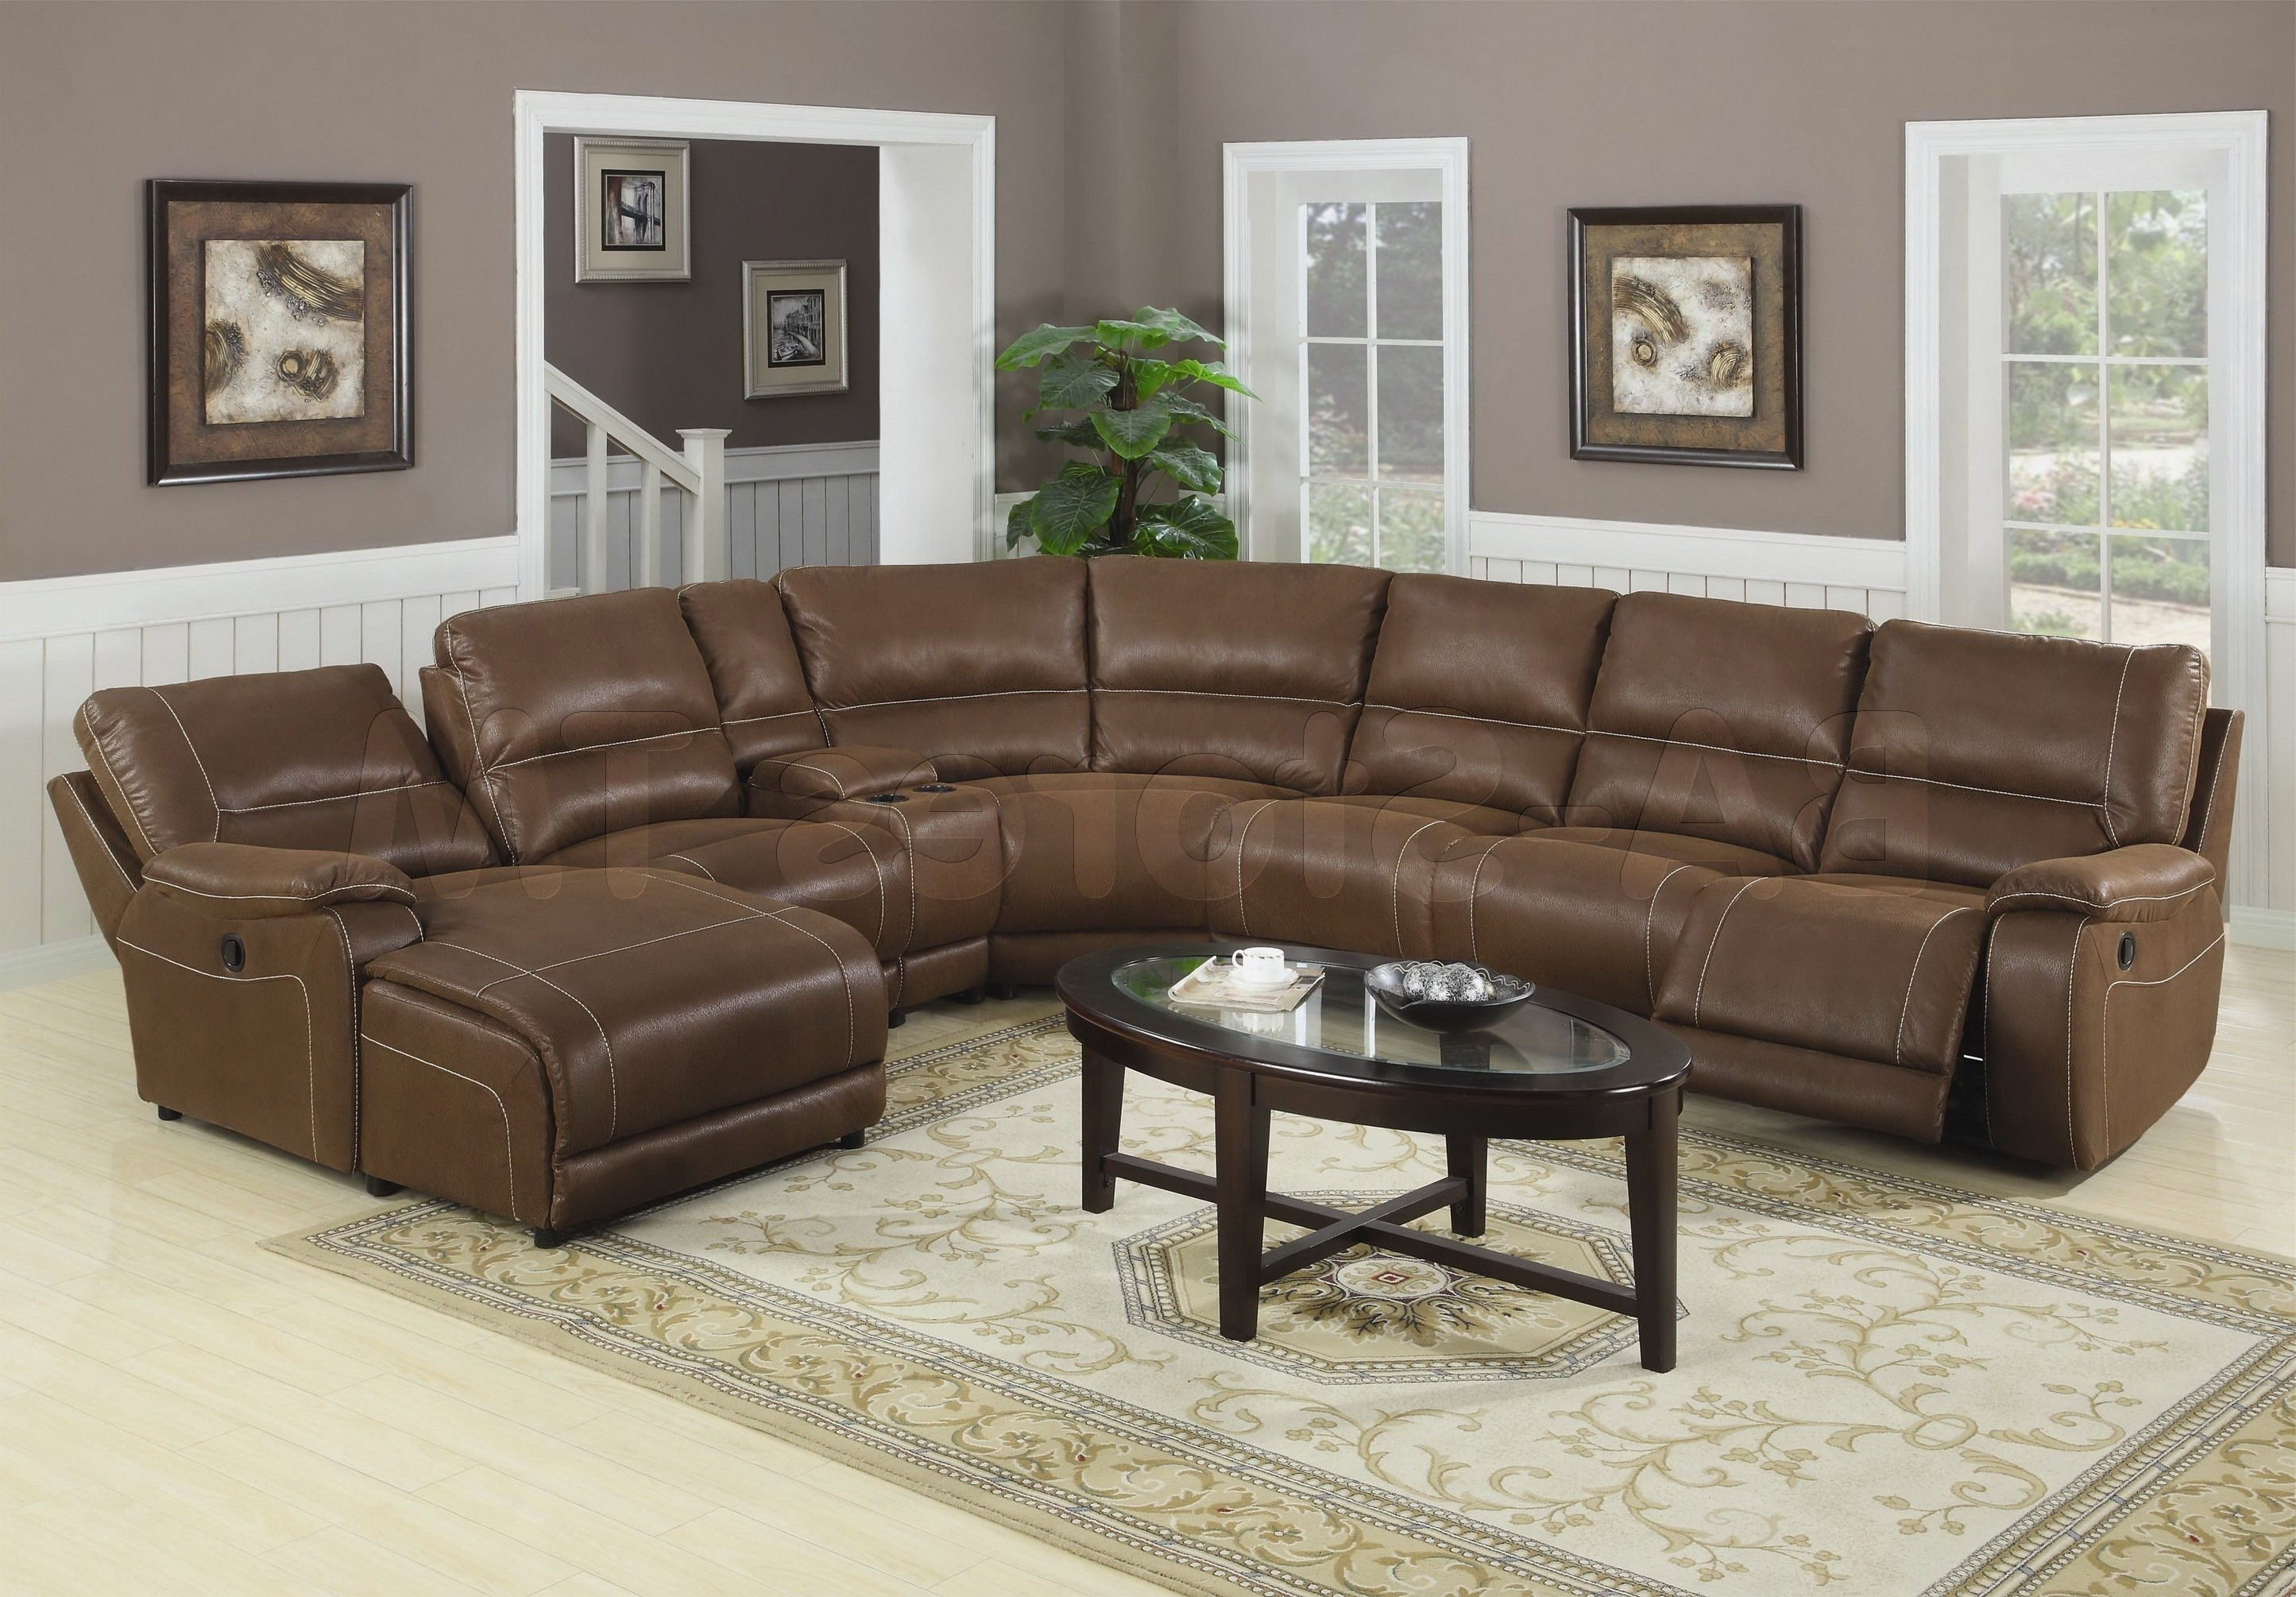 Well Known Interior Luxury Oversized Sectional Sofa For Awesome Living Room Intended For Luxury Sectional Sofas (View 18 of 20)